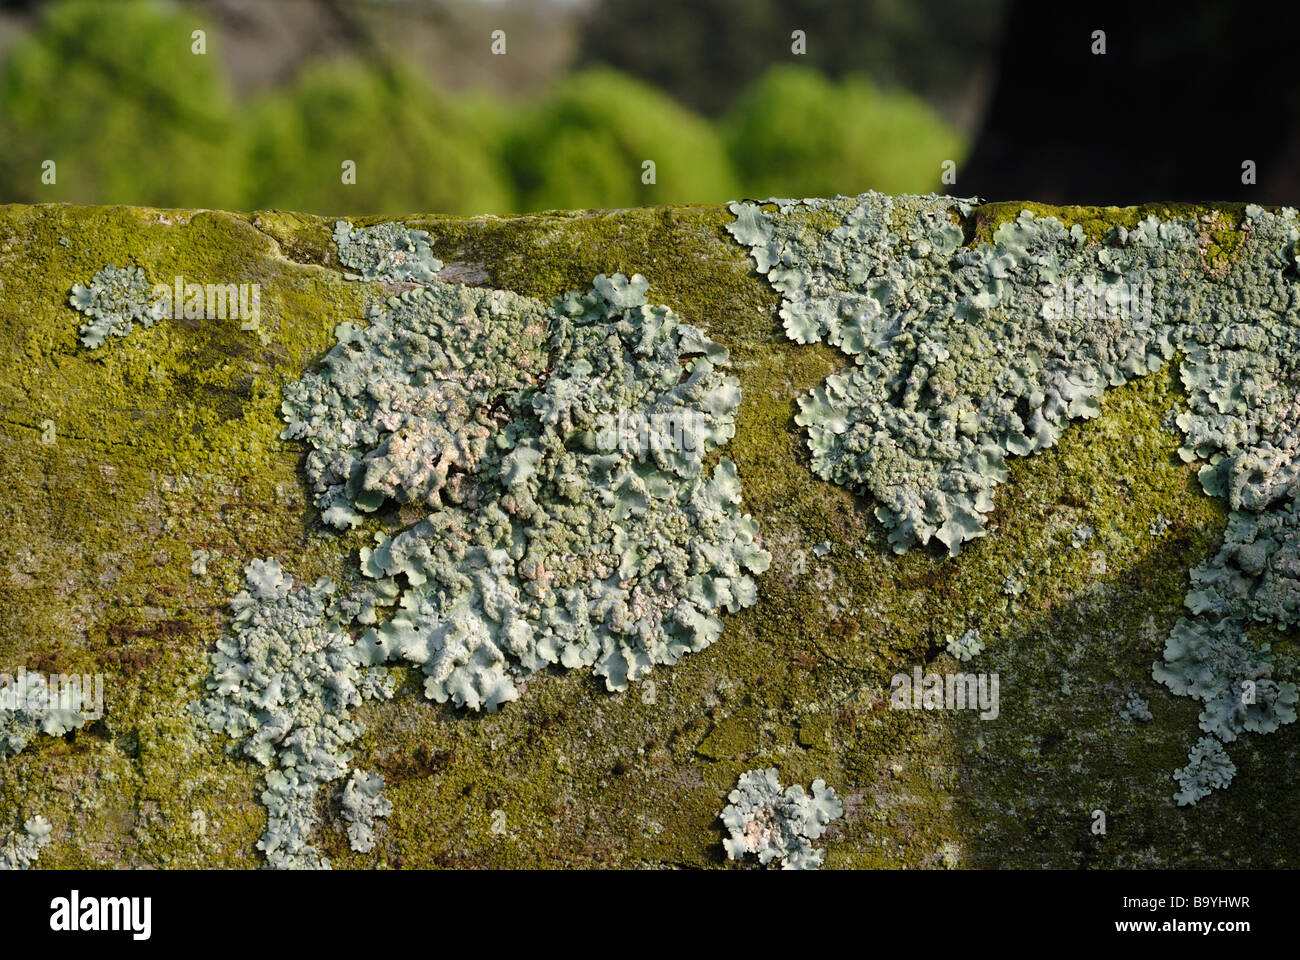 foliose lichen growing on a wooden fence rail - Stock Image